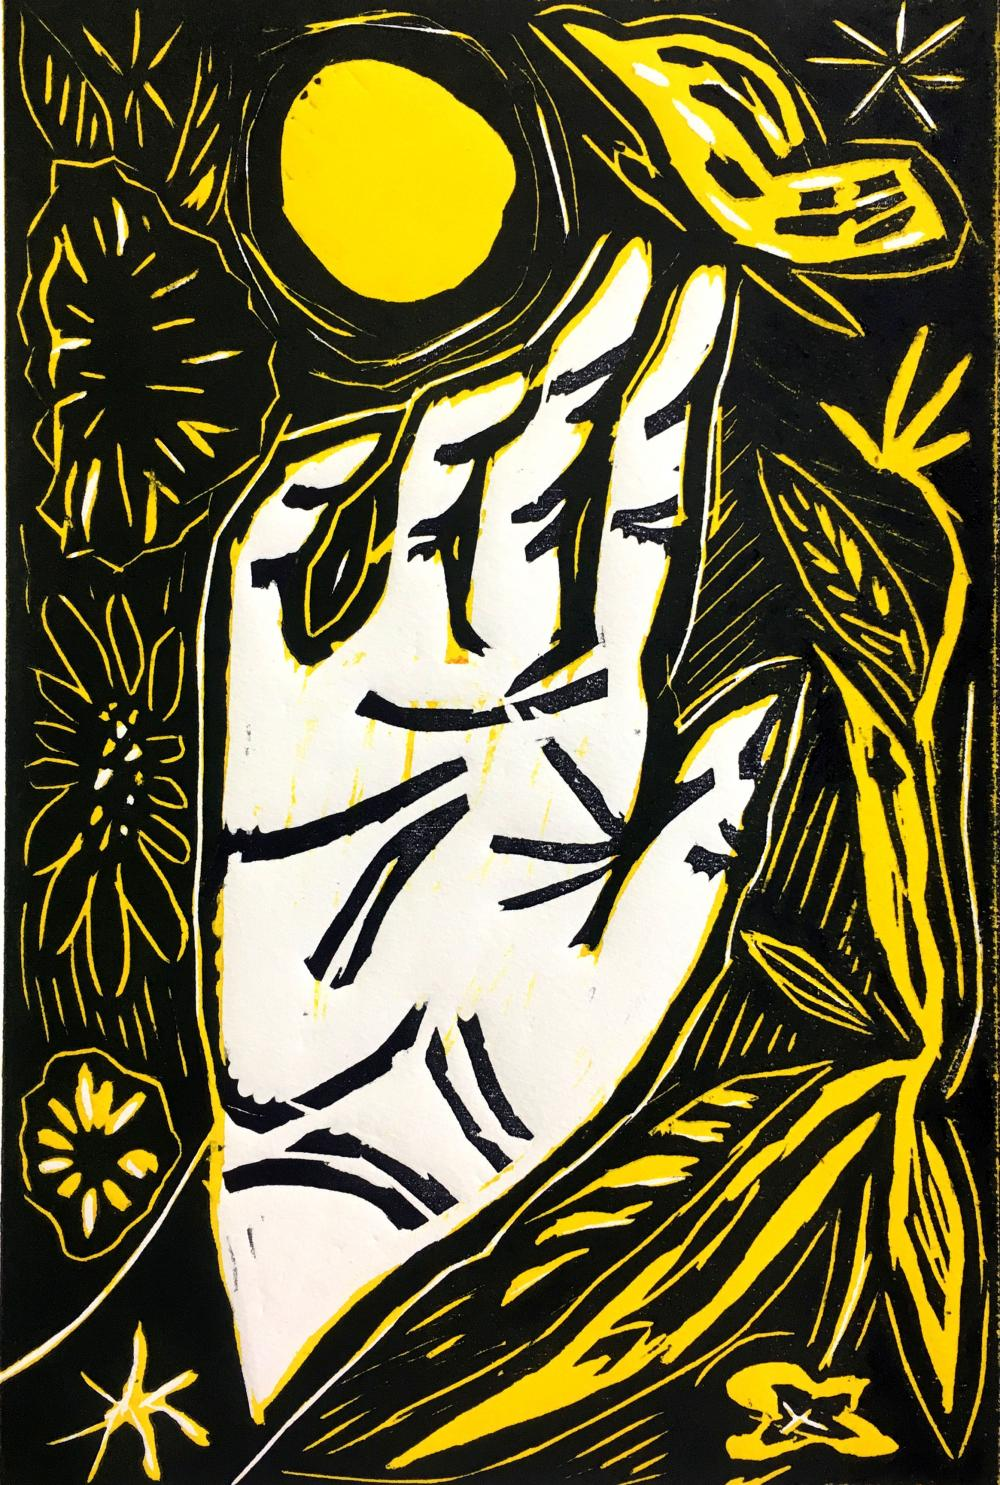 black white and yellow woodcut print from artist Lauren Moya Ford